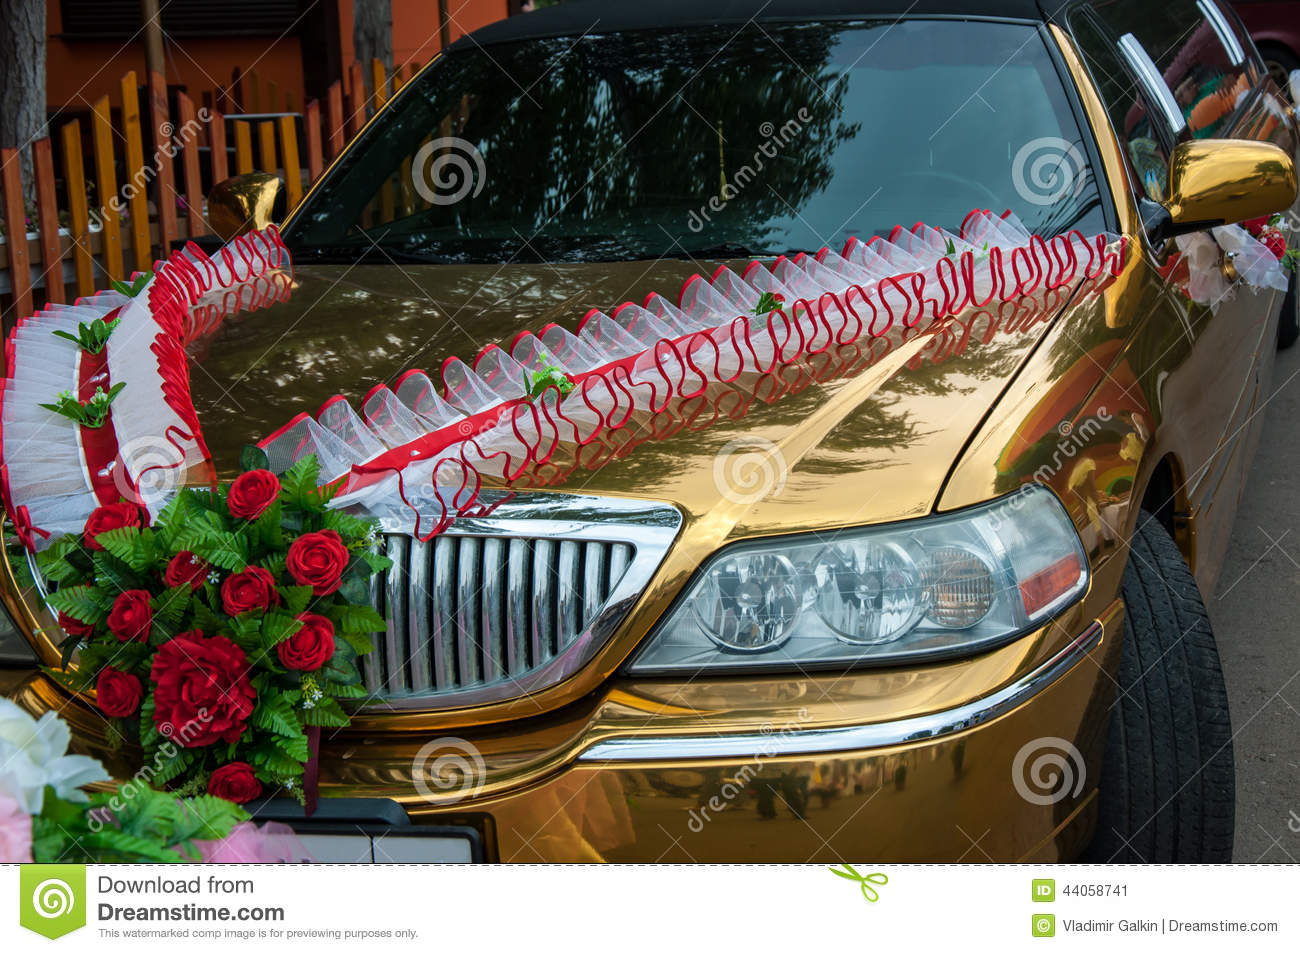 Wedding car decoration stock image image of flowers for Automobile decoration